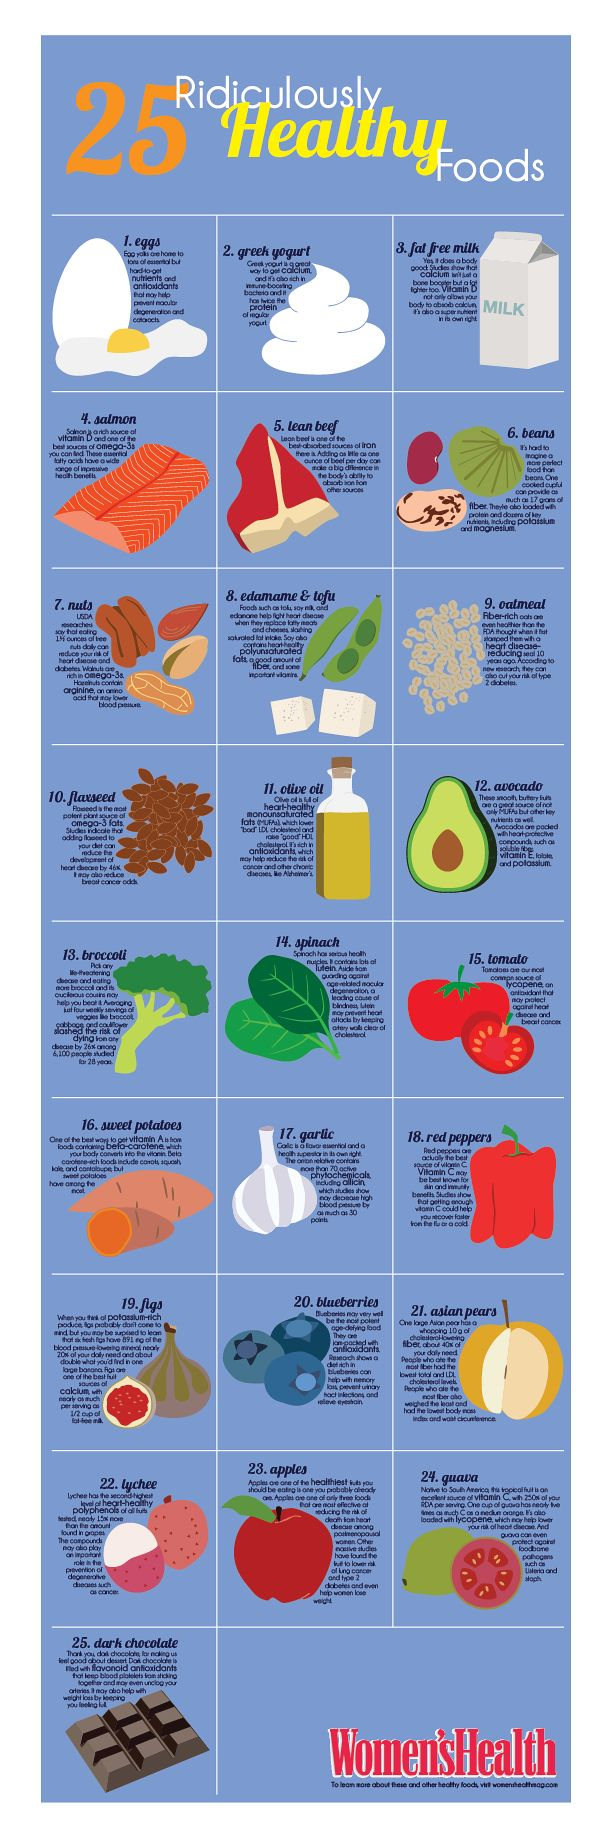 25-ridiculously-healthy-foods.png 613×1,836 pixels